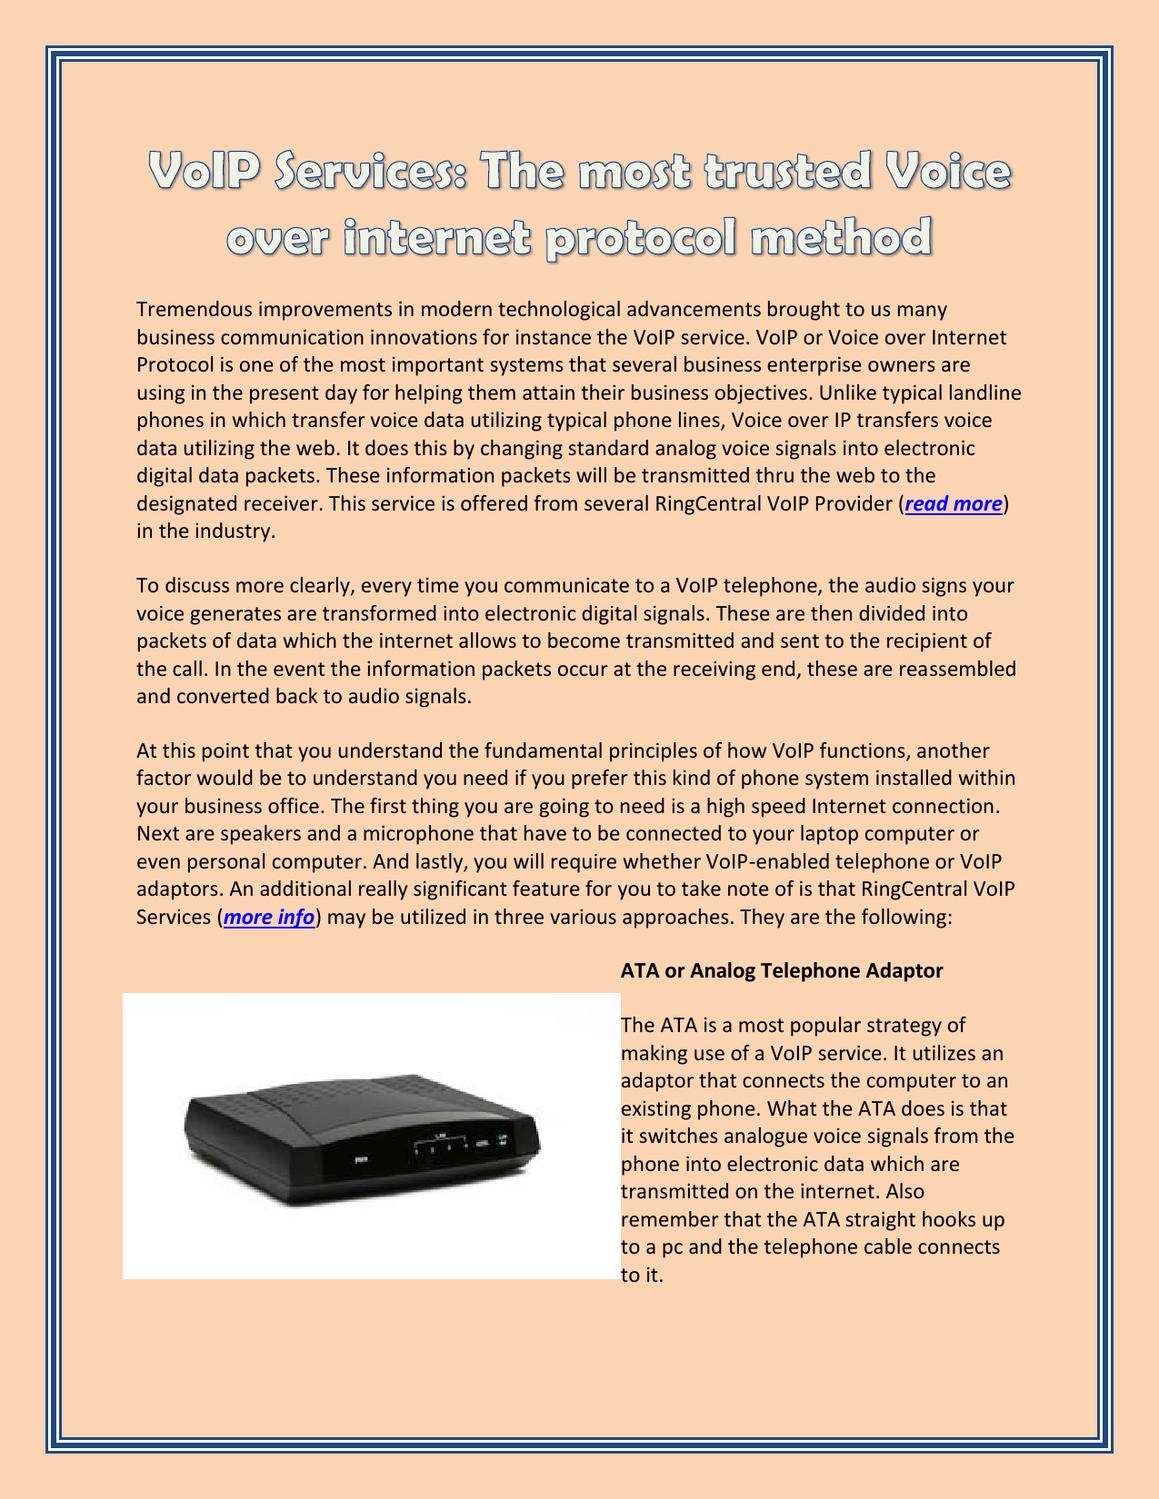 VoIP Services - The most trusted Voice over internet